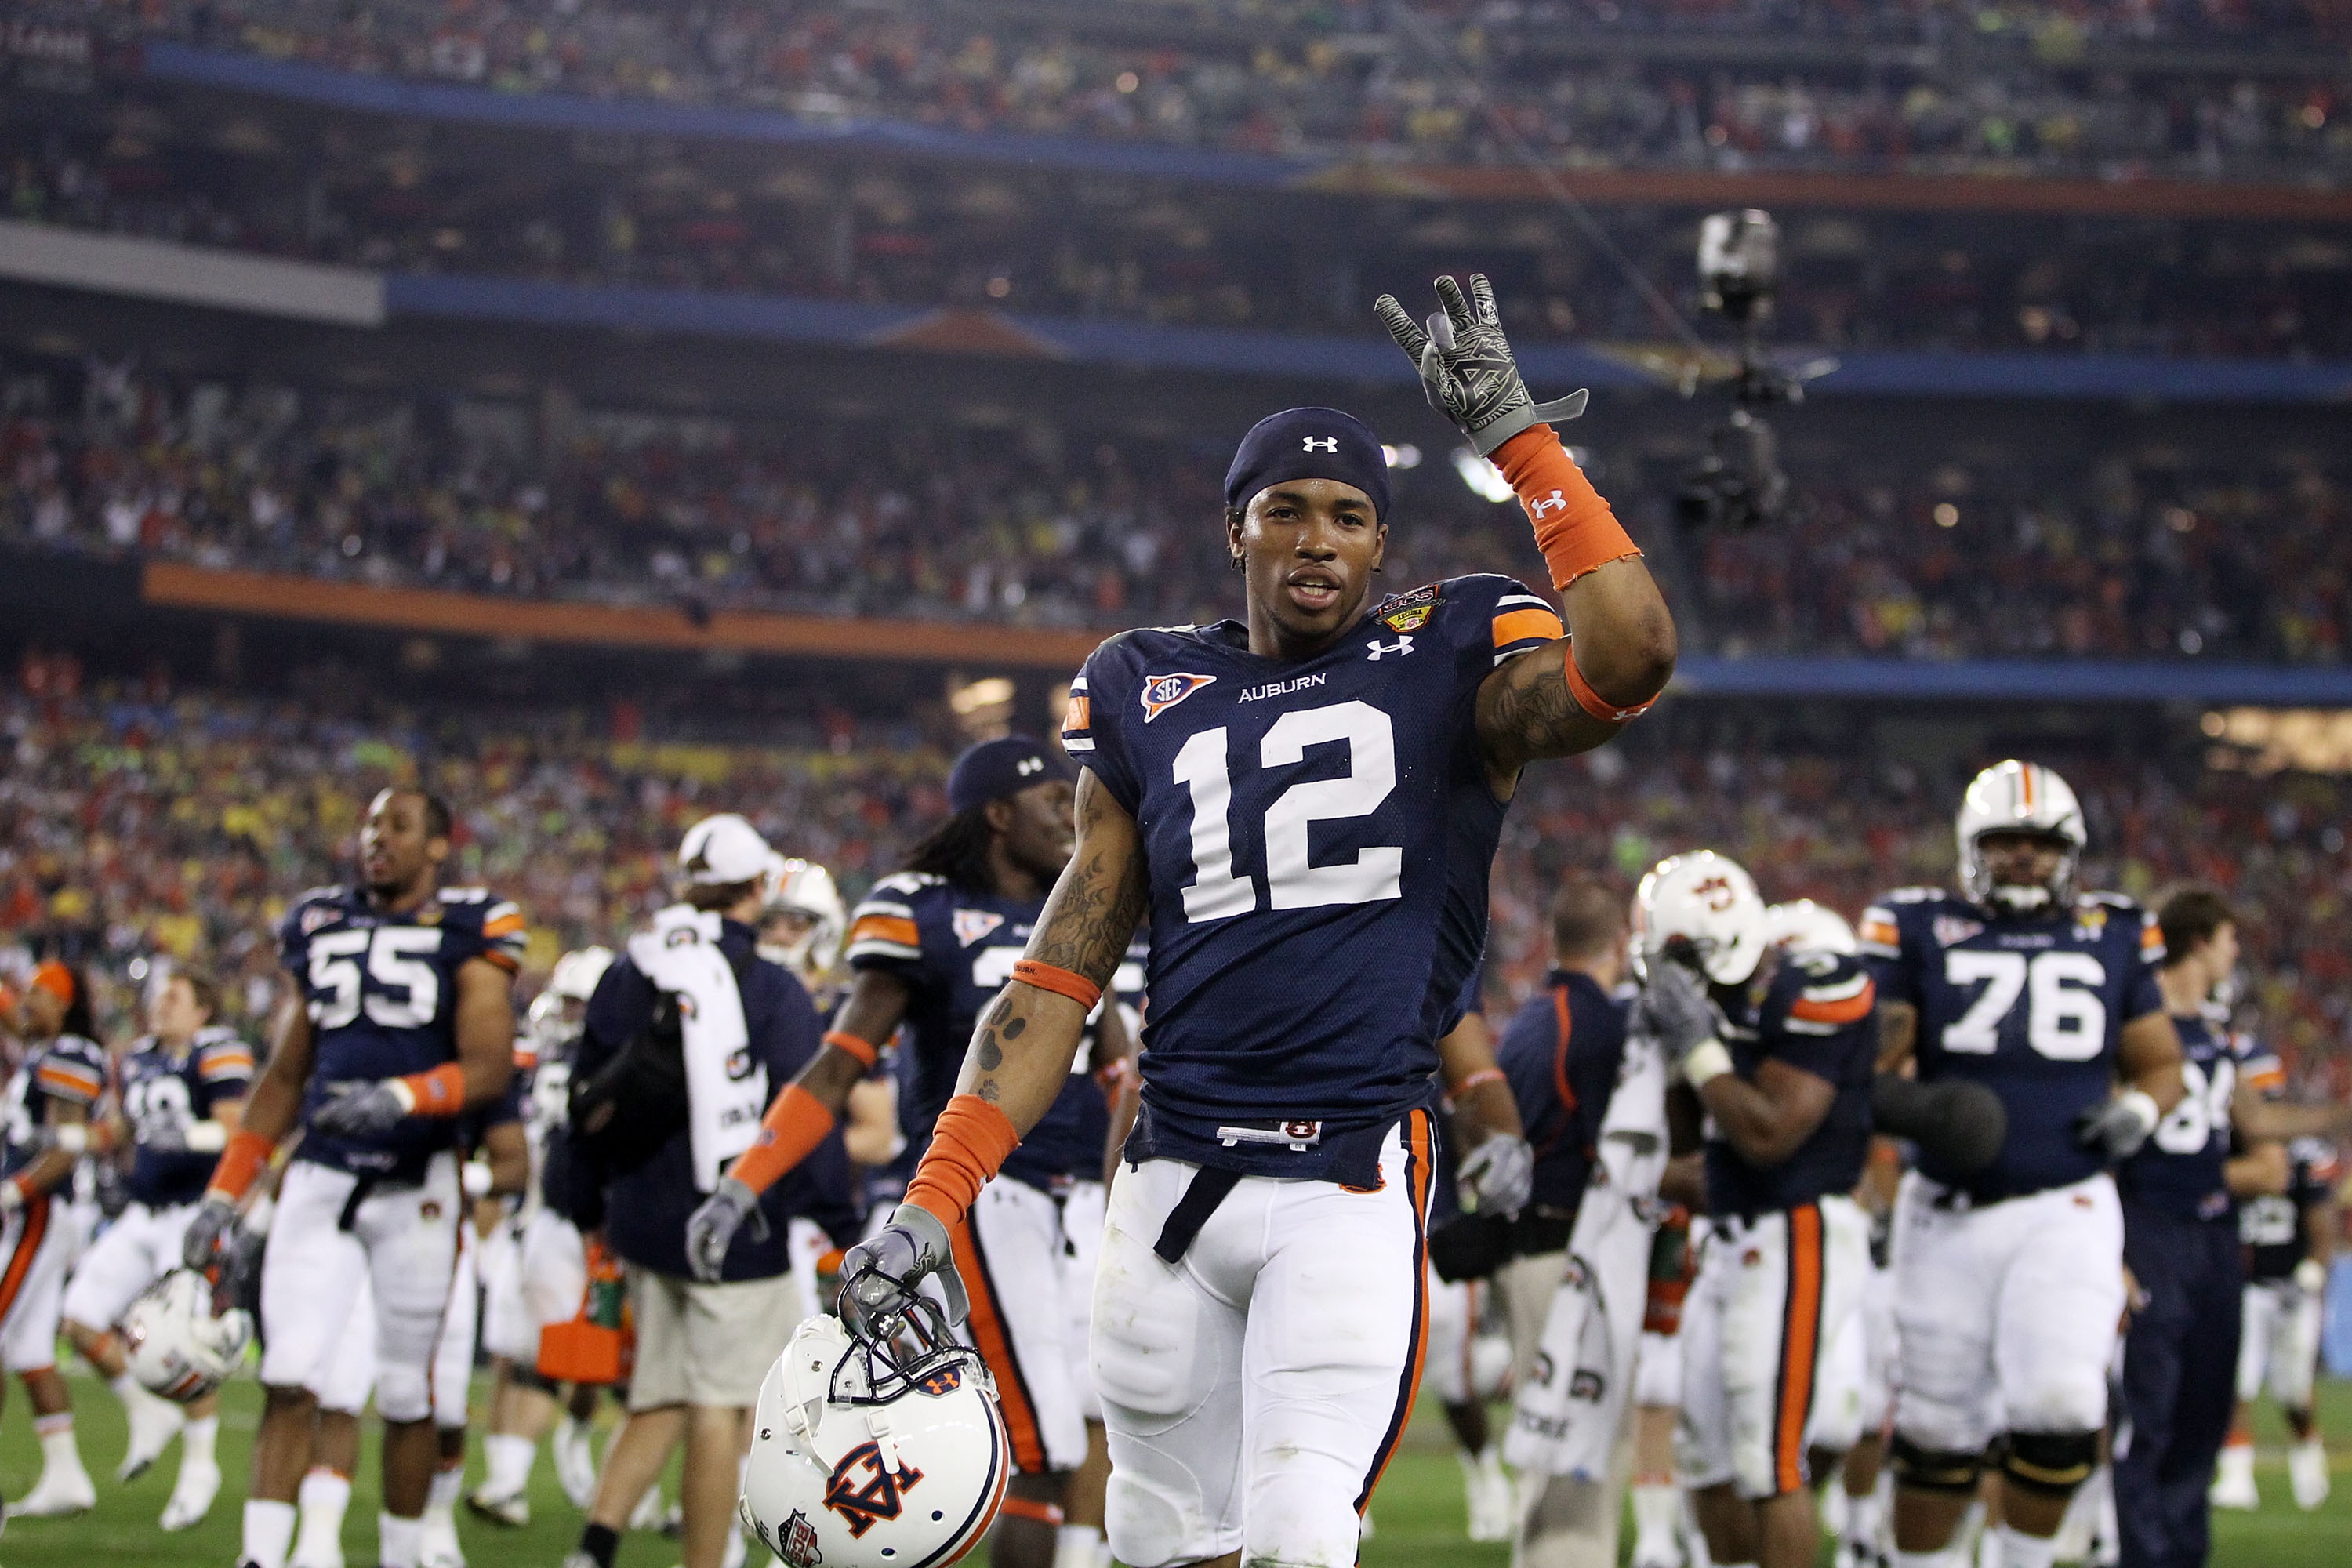 GLENDALE, AZ - JANUARY 10:  Demetruce McNeal #12 of the Auburn Tigers gestures against the Auburn Tigers the Tostitos BCS National Championship Game against the Oregon Ducks at University of Phoenix Stadium on January 10, 2011 in Glendale, Arizona.  (Phot